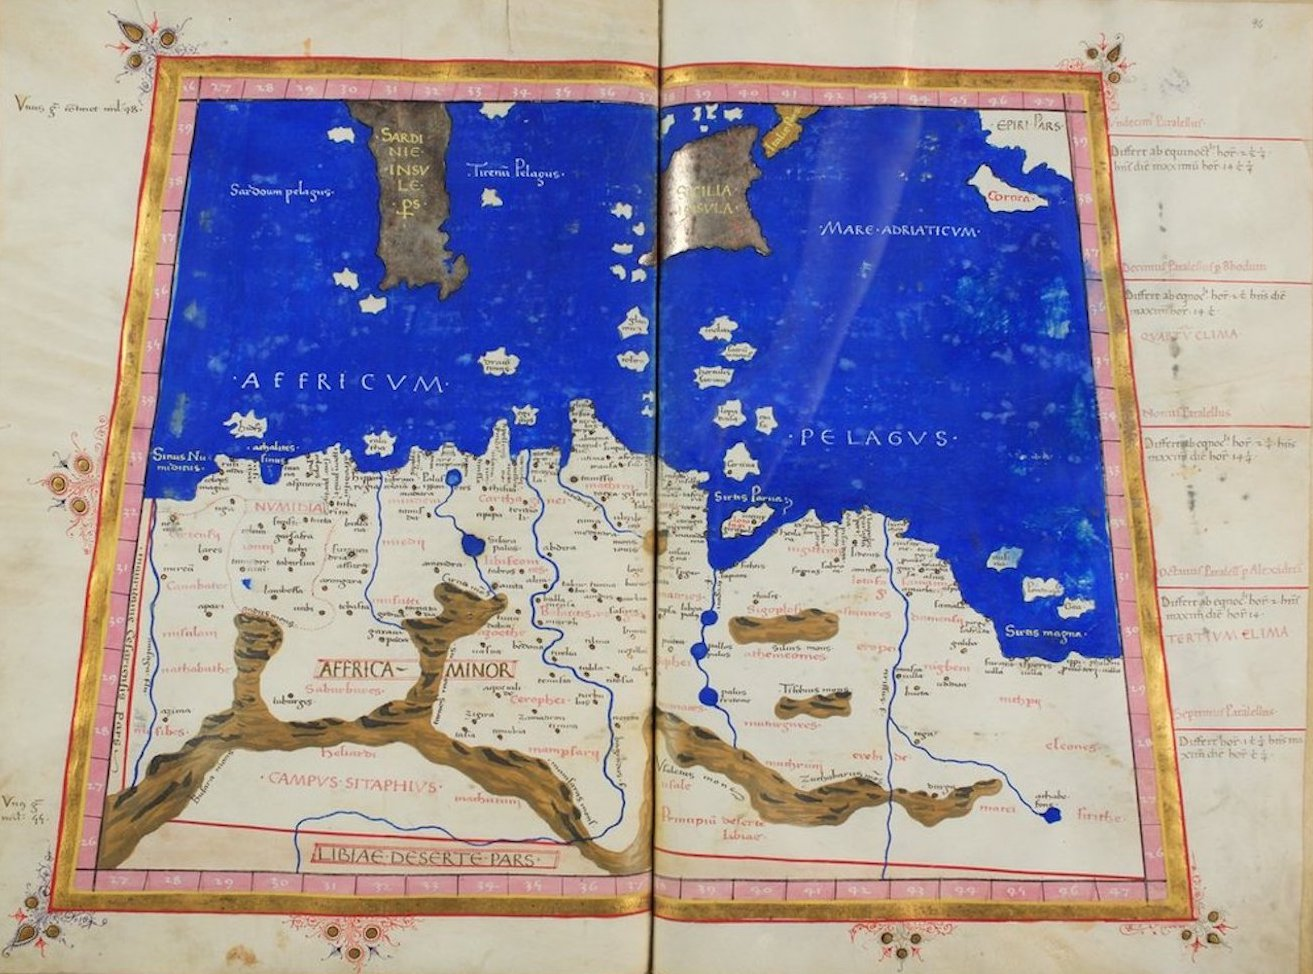 Ptolemy's Map of Africa - I